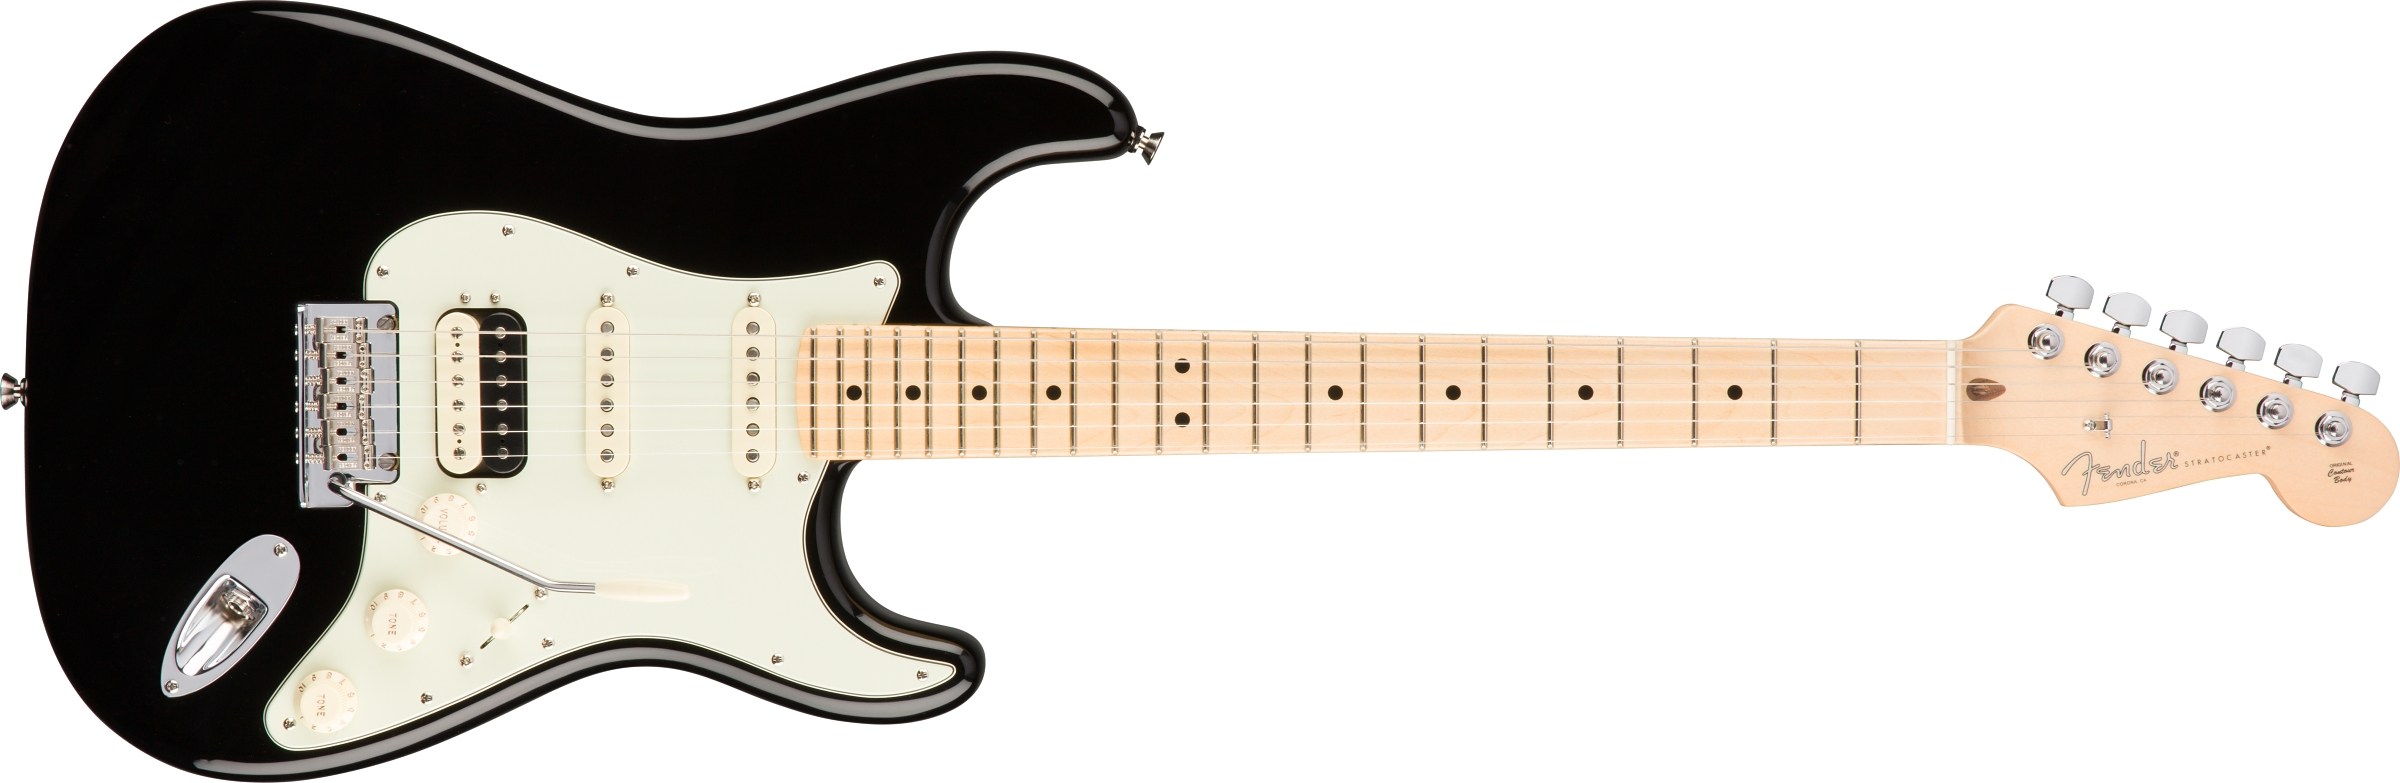 american professional stratocaster® hss shawbucker electric guitarstap to expand